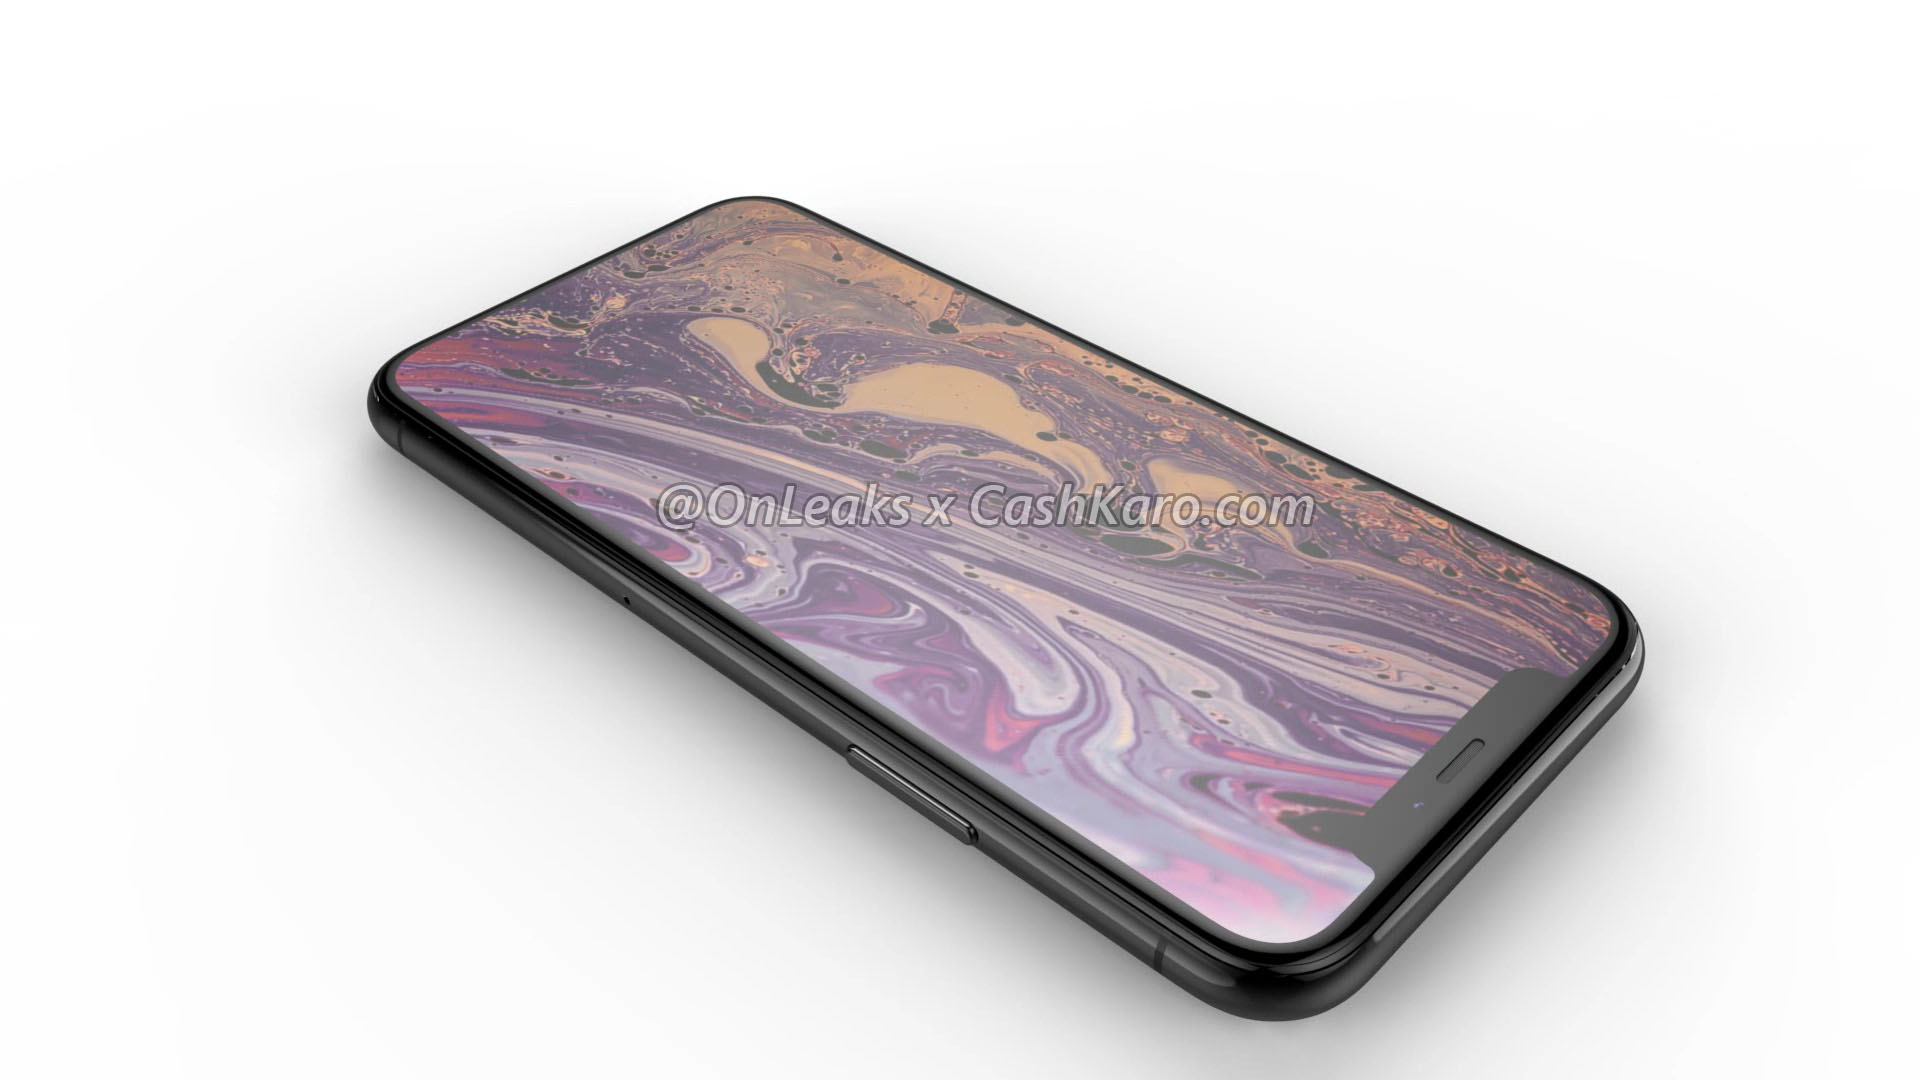 Iphone Xi Renders New Back Glass Design Img 5